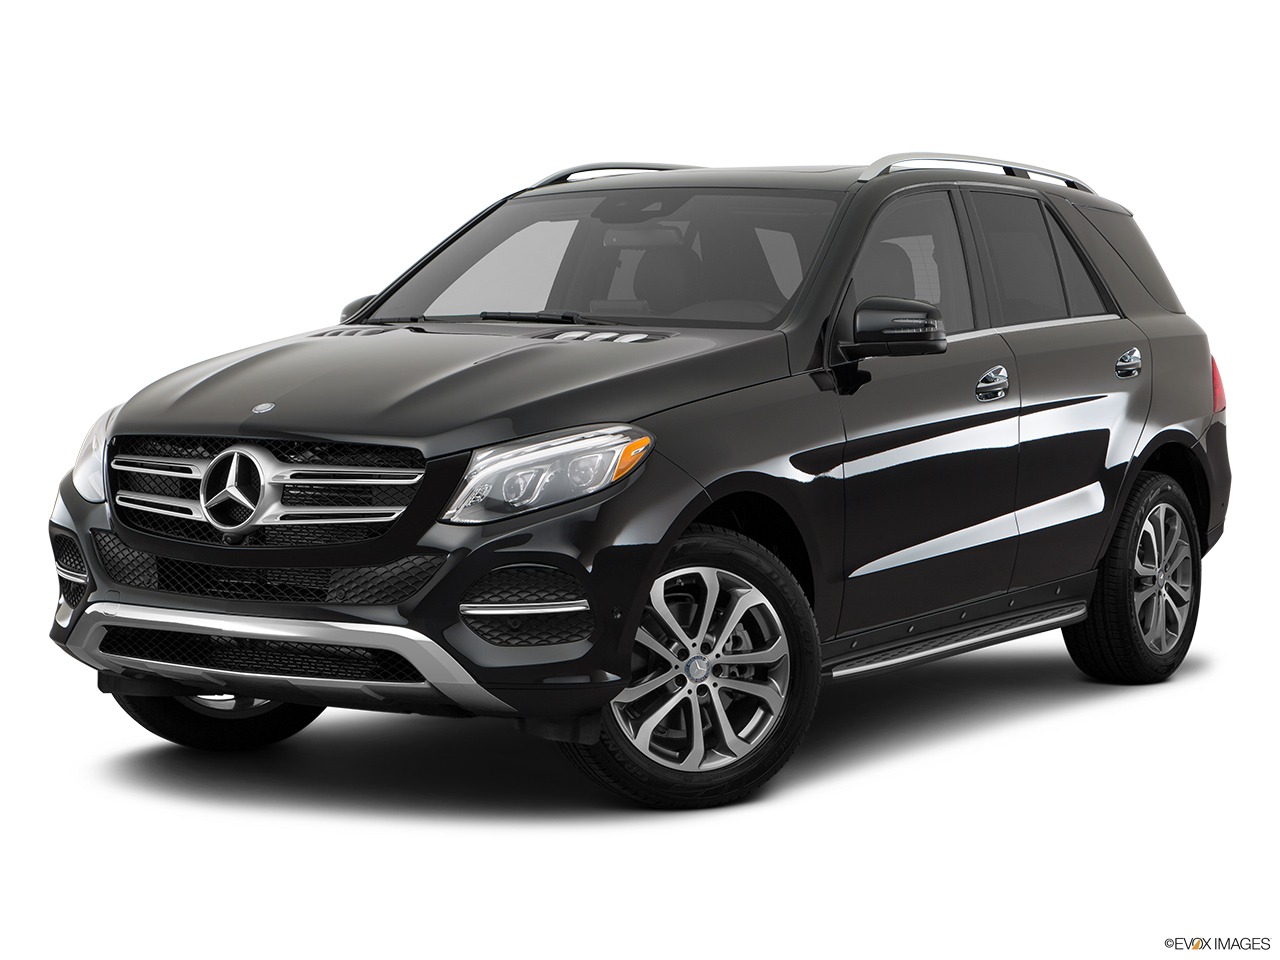 Car pictures list for mercedes benz gle class 2017 gle 400 for 2017 mercedes benz gle class